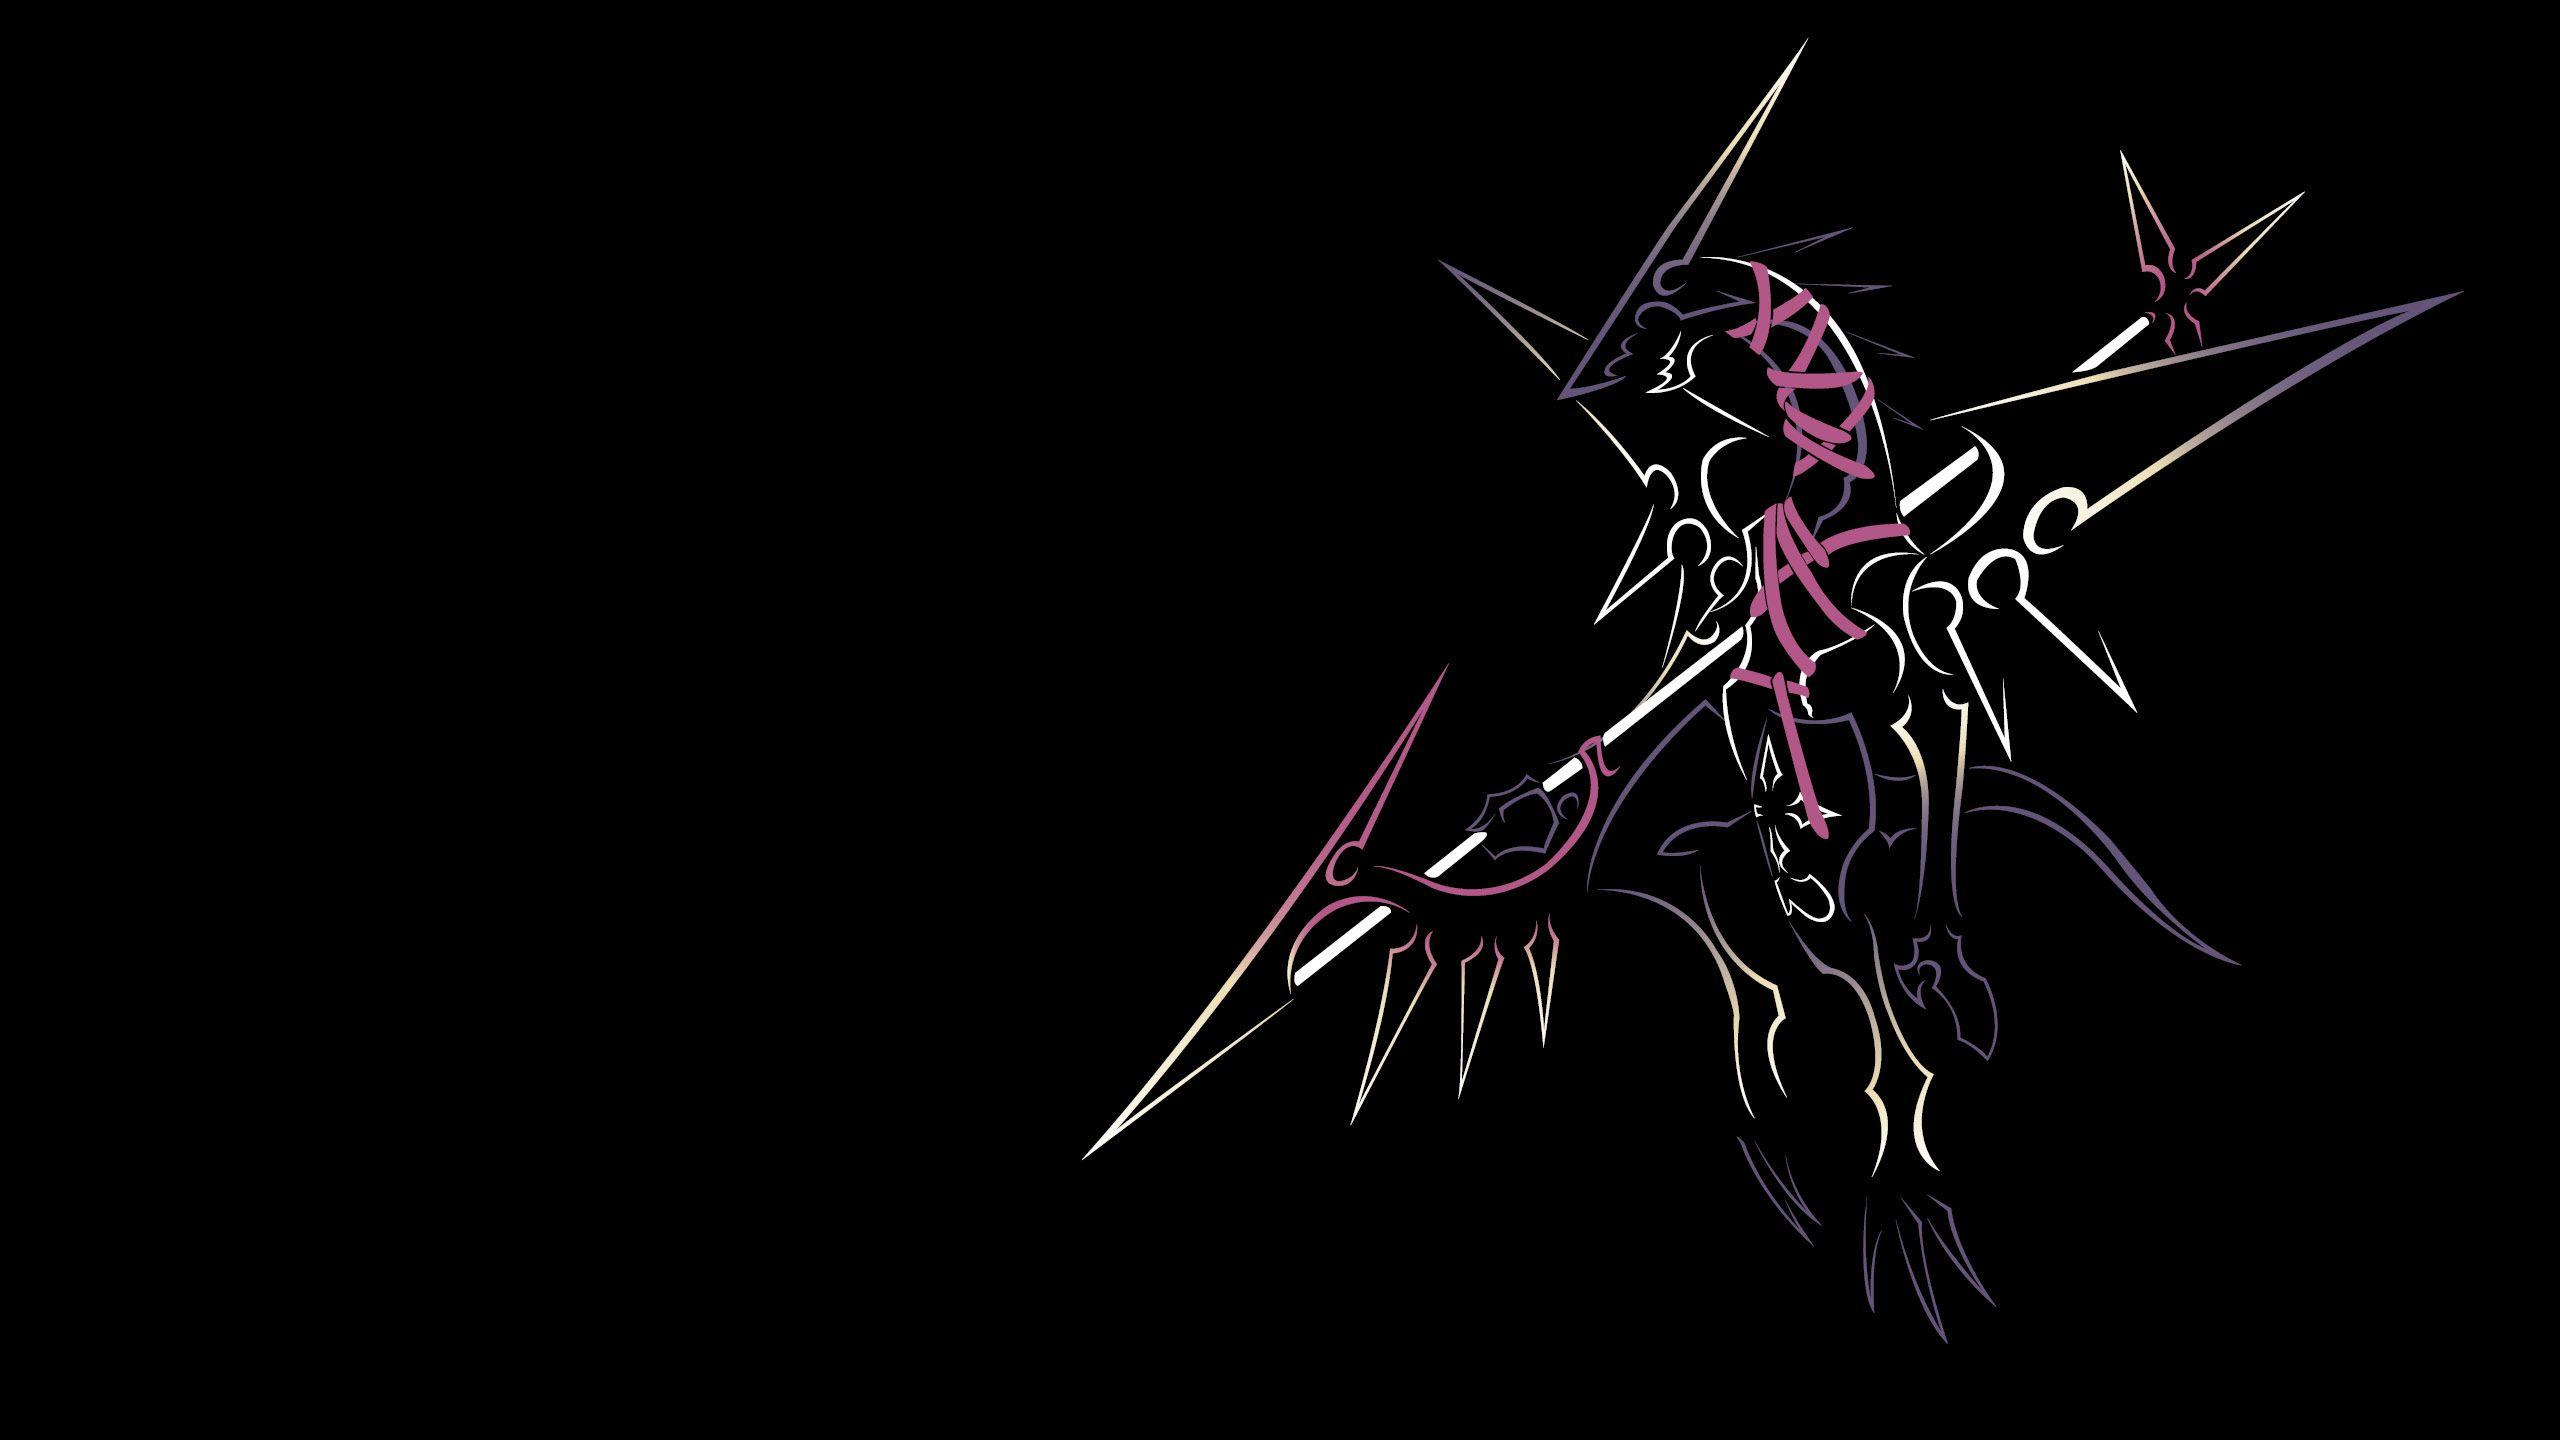 Free Download Kingdom Hearts 3 Wallpapers 2560x1440 For Your